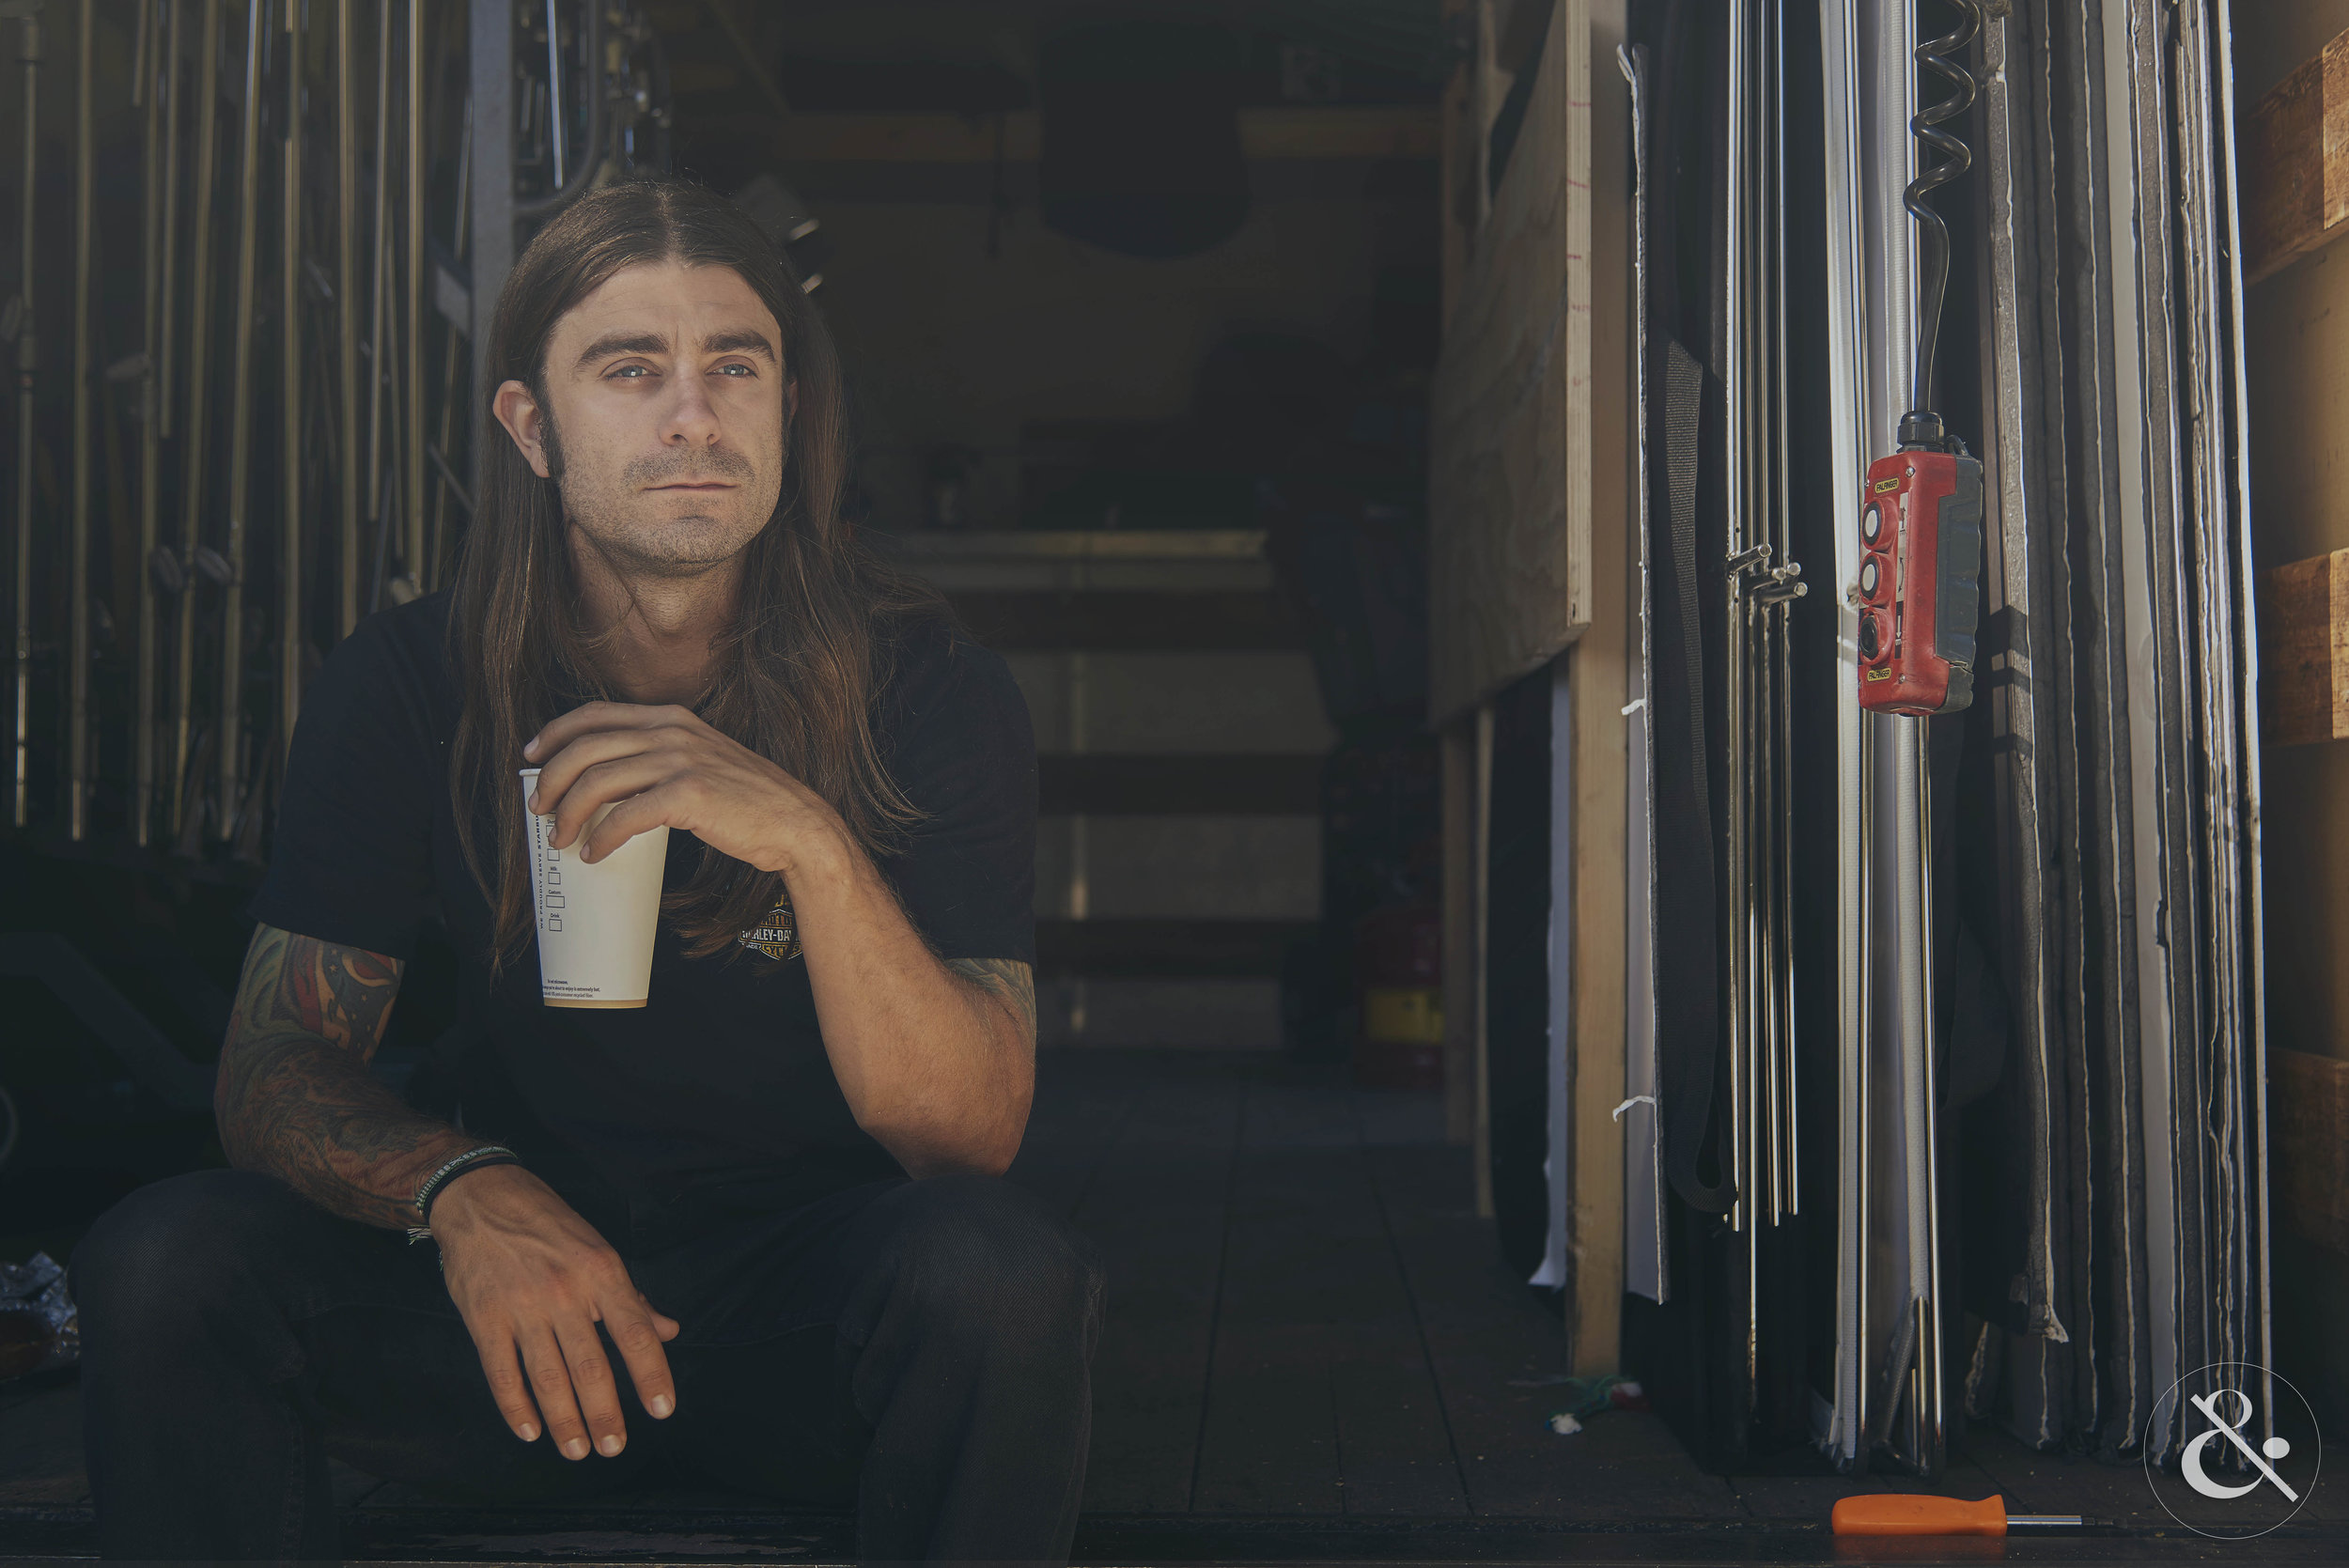 nick_griptruck_coffee copy.jpg